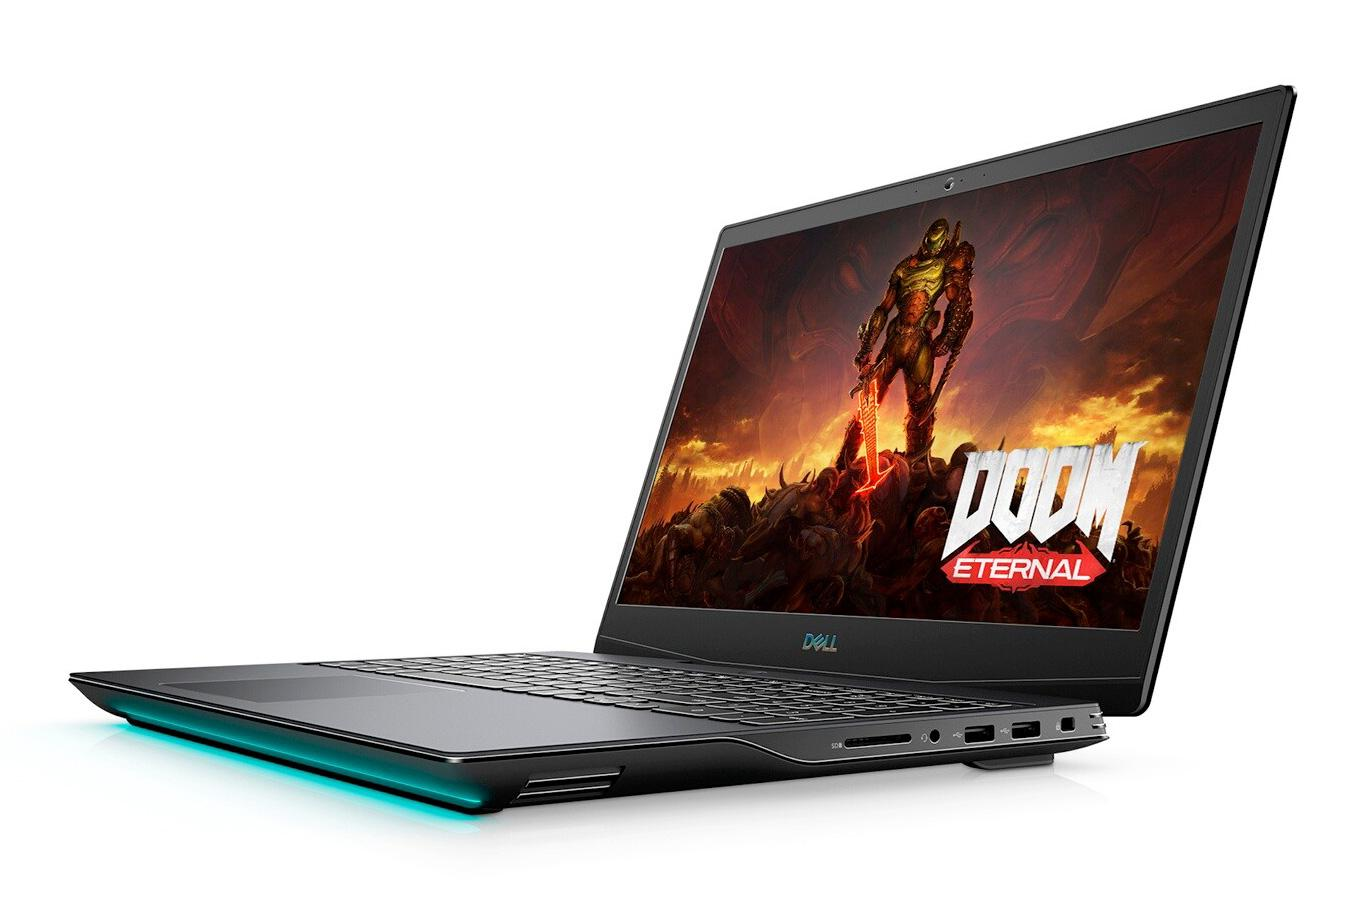 Ordinateur portable Dell Inspiron G5 15 5500-252 Noir - RTX 2060, IPS 300Hz, SSD 1 To, TB3 - photo 3